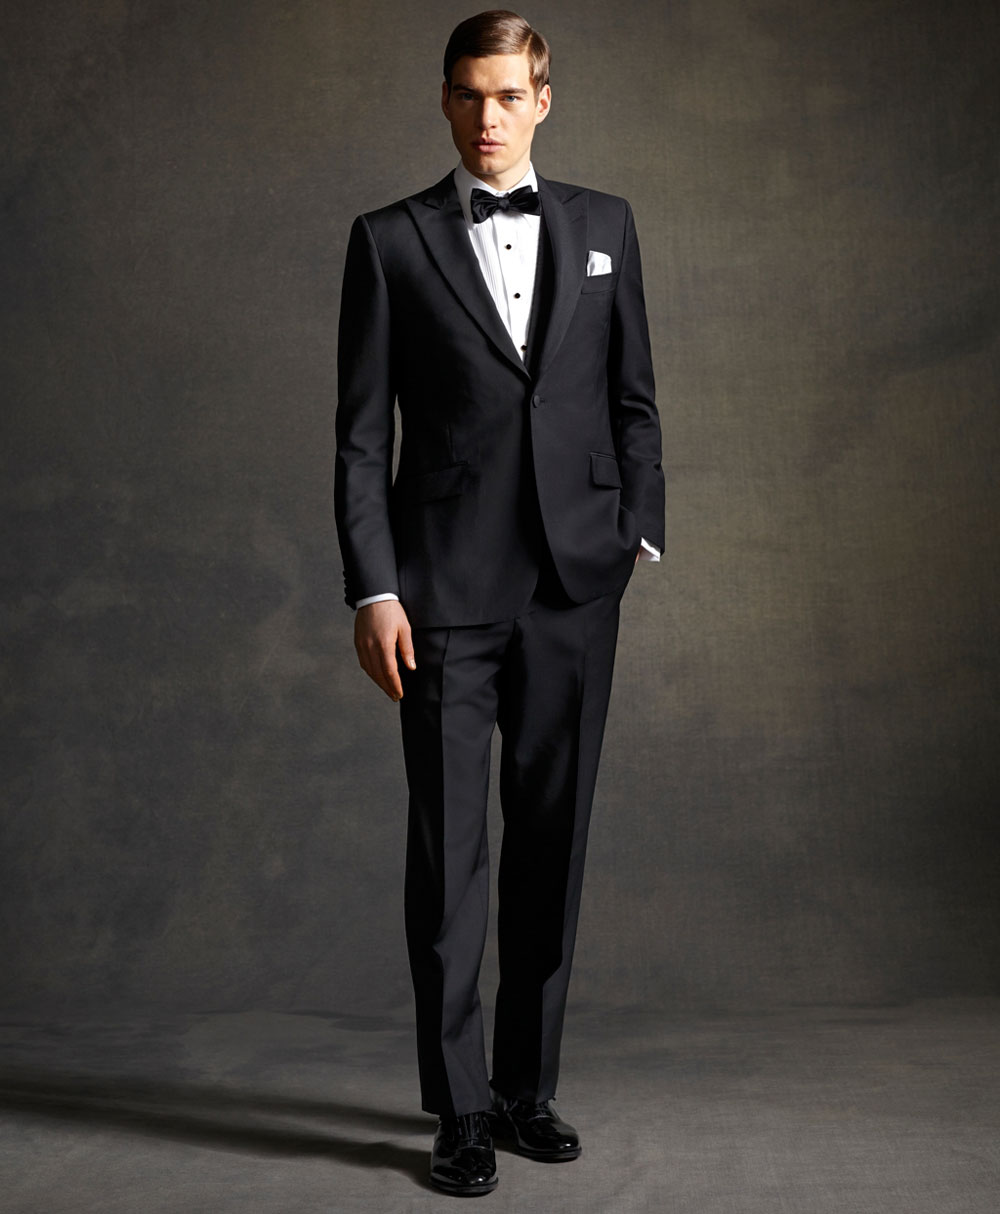 The Great Gatsby: Great Gatsby Inspired Menswear Collection By Brooks